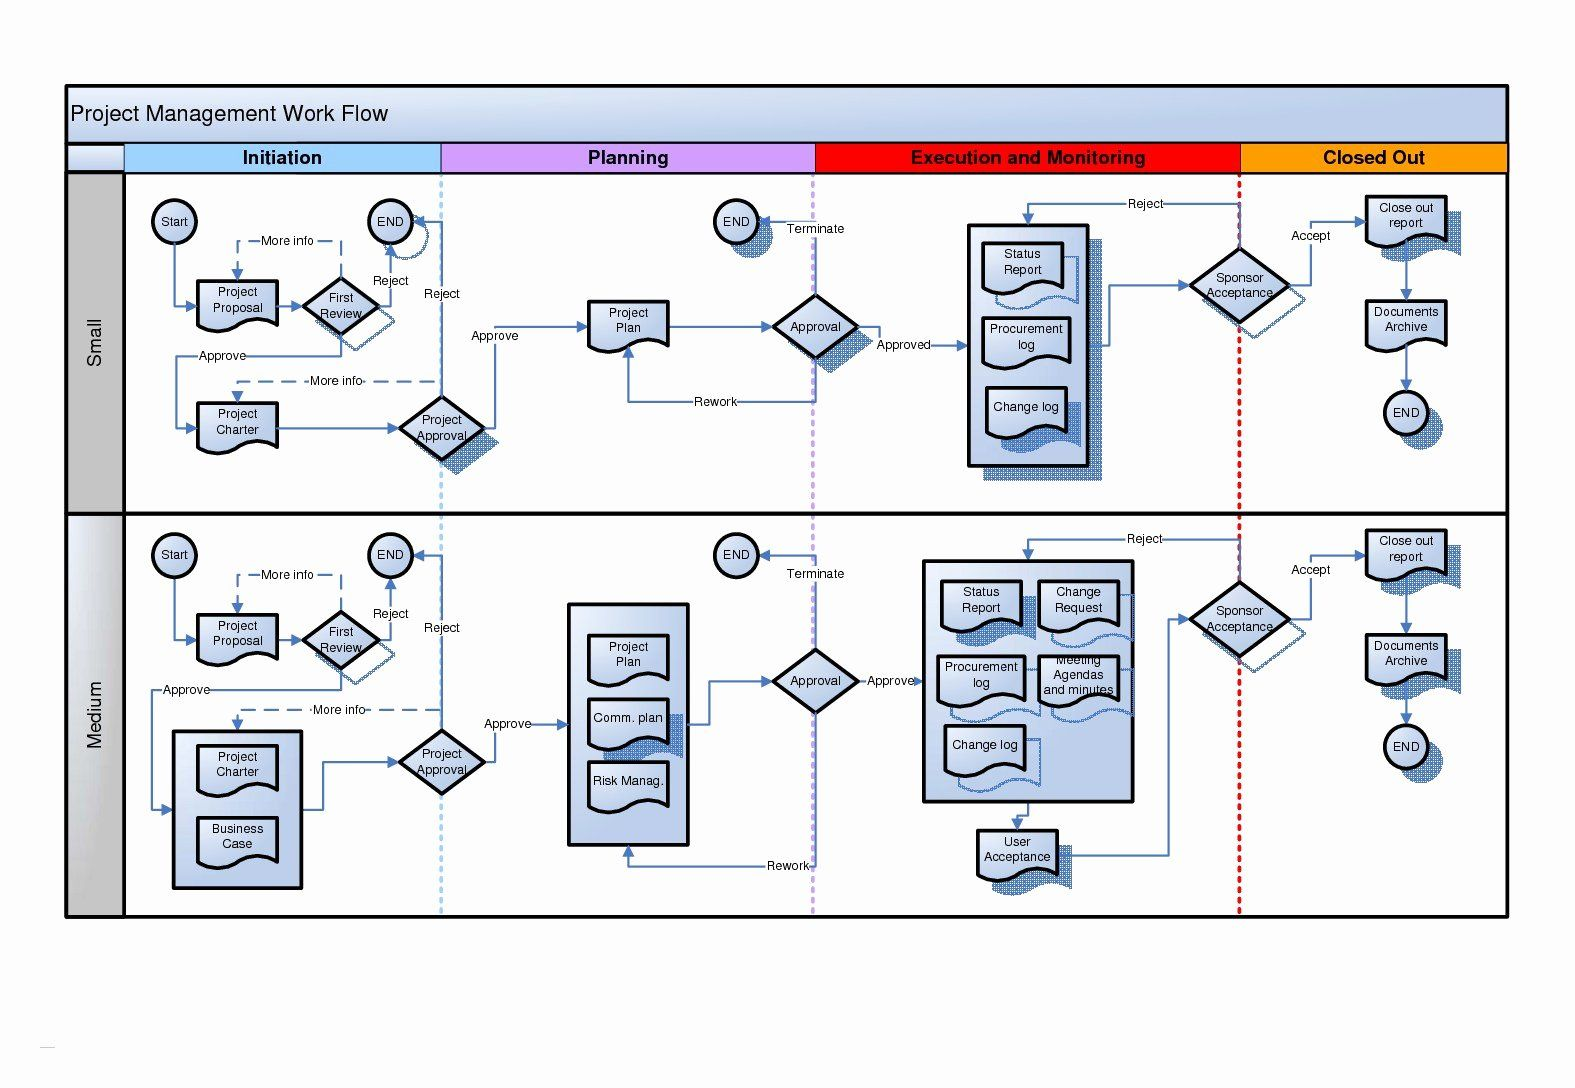 Free Work Flow Chart Template New Visio Process Flow Chart Examples How To Make Detailed In 2020 Flow Chart Template Work Flow Chart Process Flow Chart